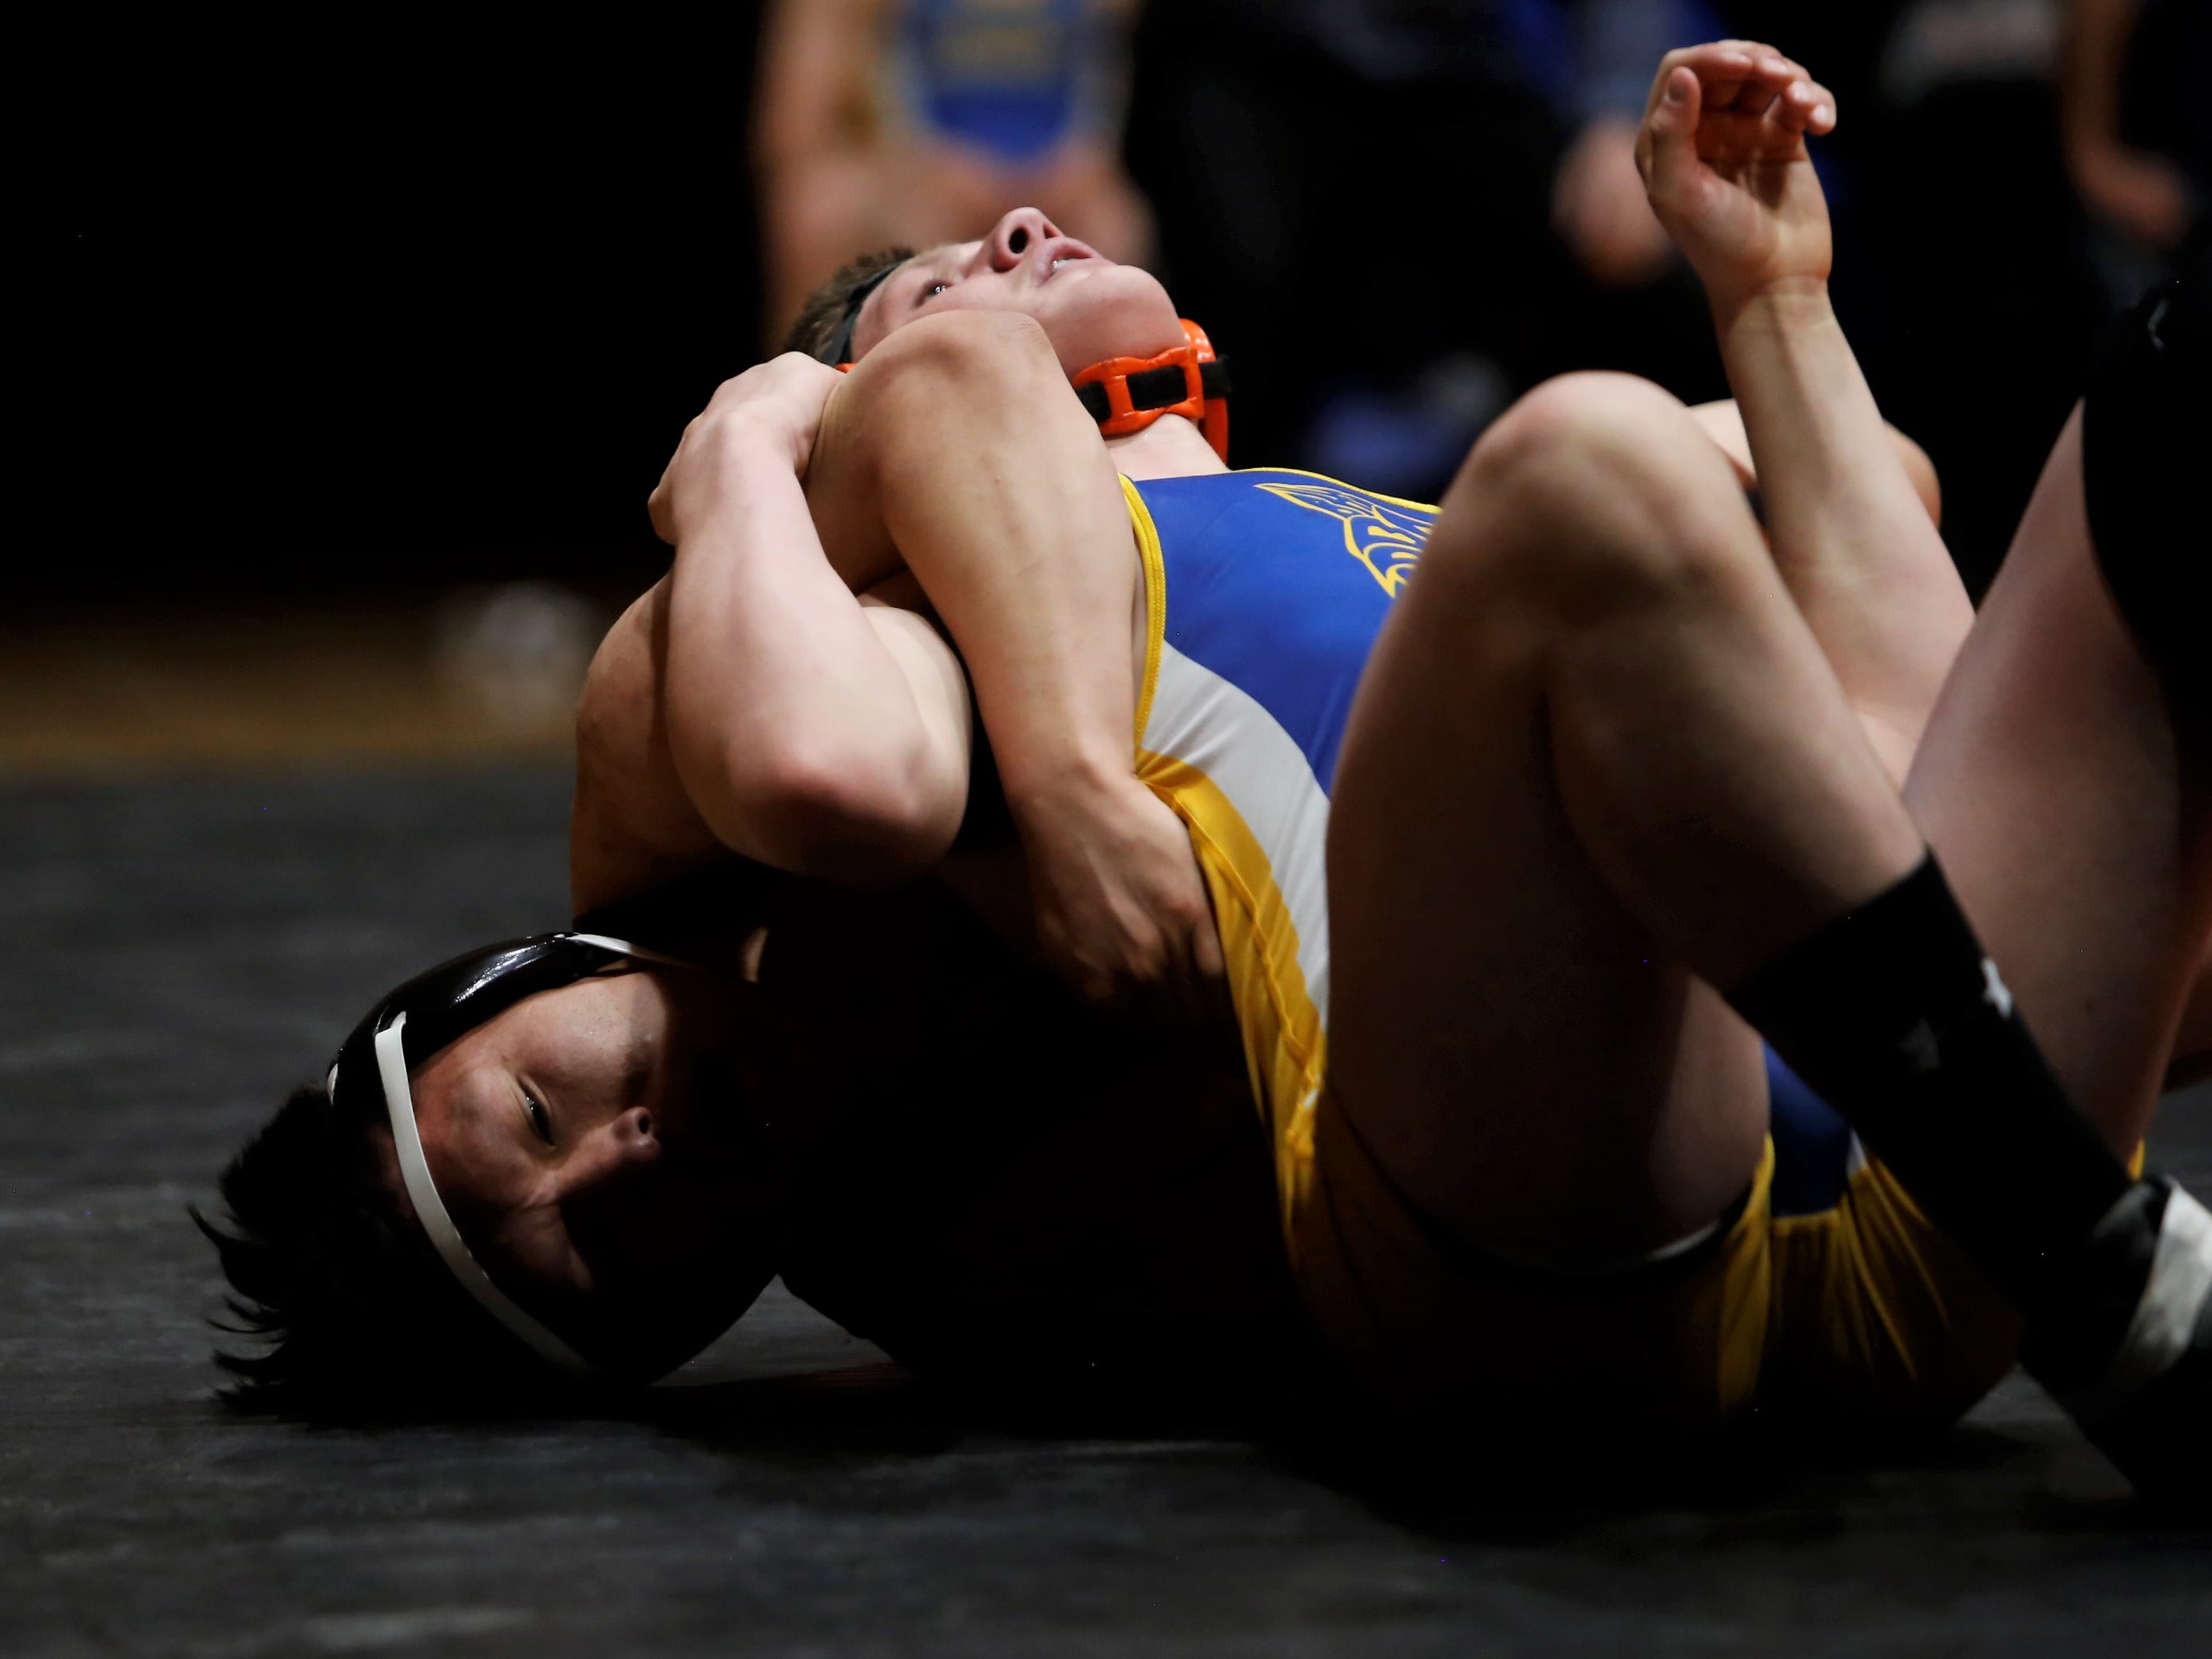 Aztec's Malcolm Altisi pulls back Bloomfield's Gerald Wiza by the right arm in the 170-pound division match during Thursday's District 1-4A duals at Lillywhite Gym in Aztec. Wiza won via 5-1 decision.